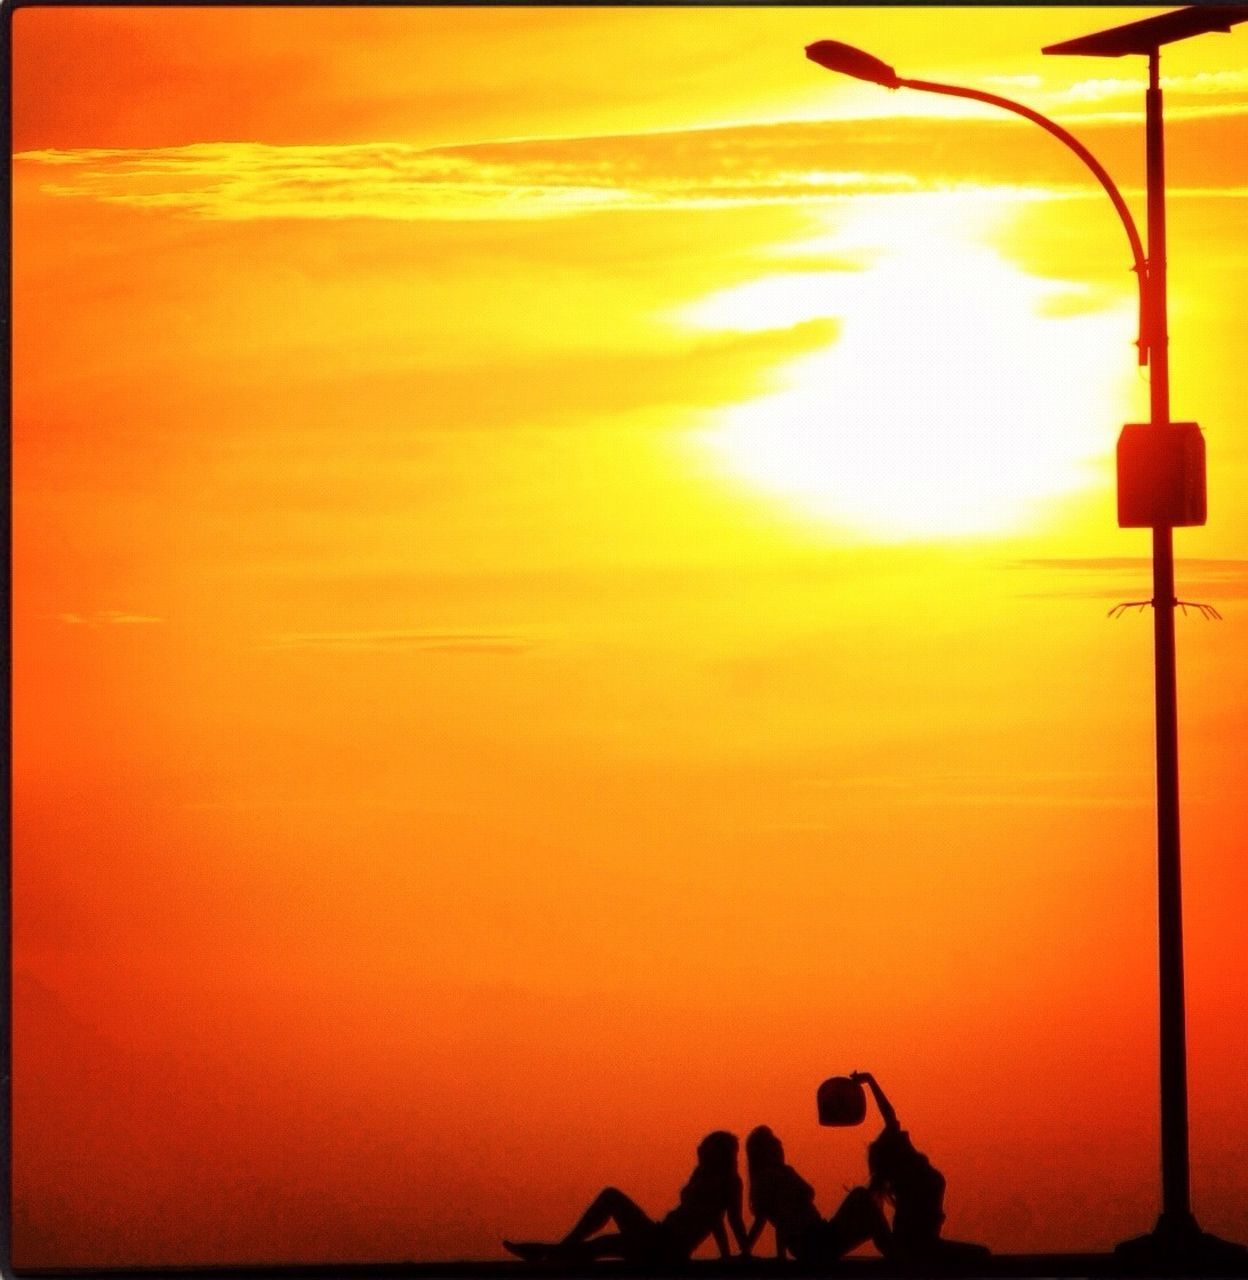 sunset, orange color, silhouette, nature, real people, yellow, outdoors, sky, beauty in nature, scenics, lifestyles, photography themes, photographing, men, technology, one person, day, people